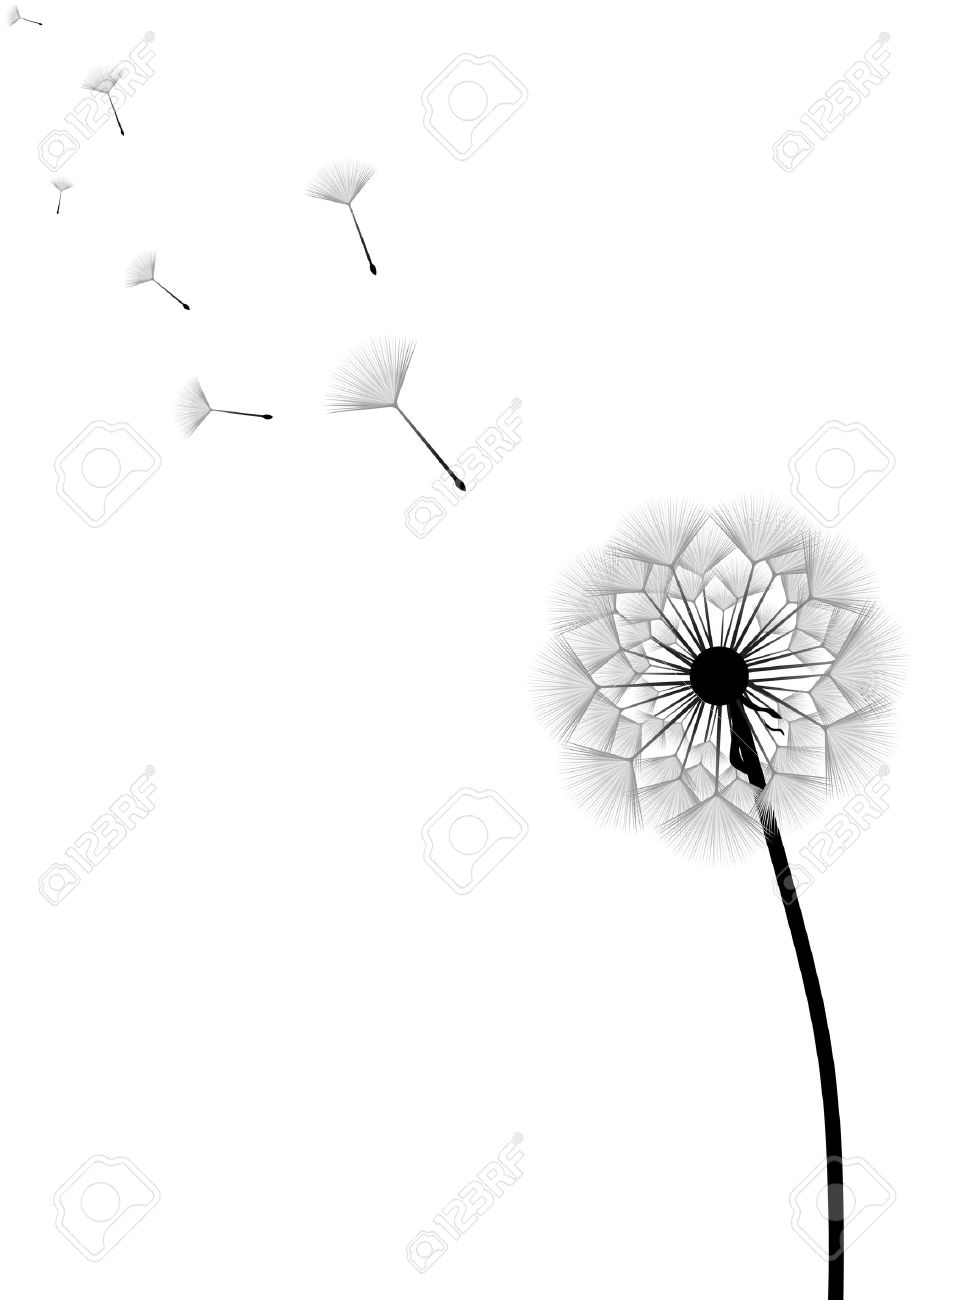 Vector illustration of dandelion with flying seeds isolated on white background Stock Vector - 5174890